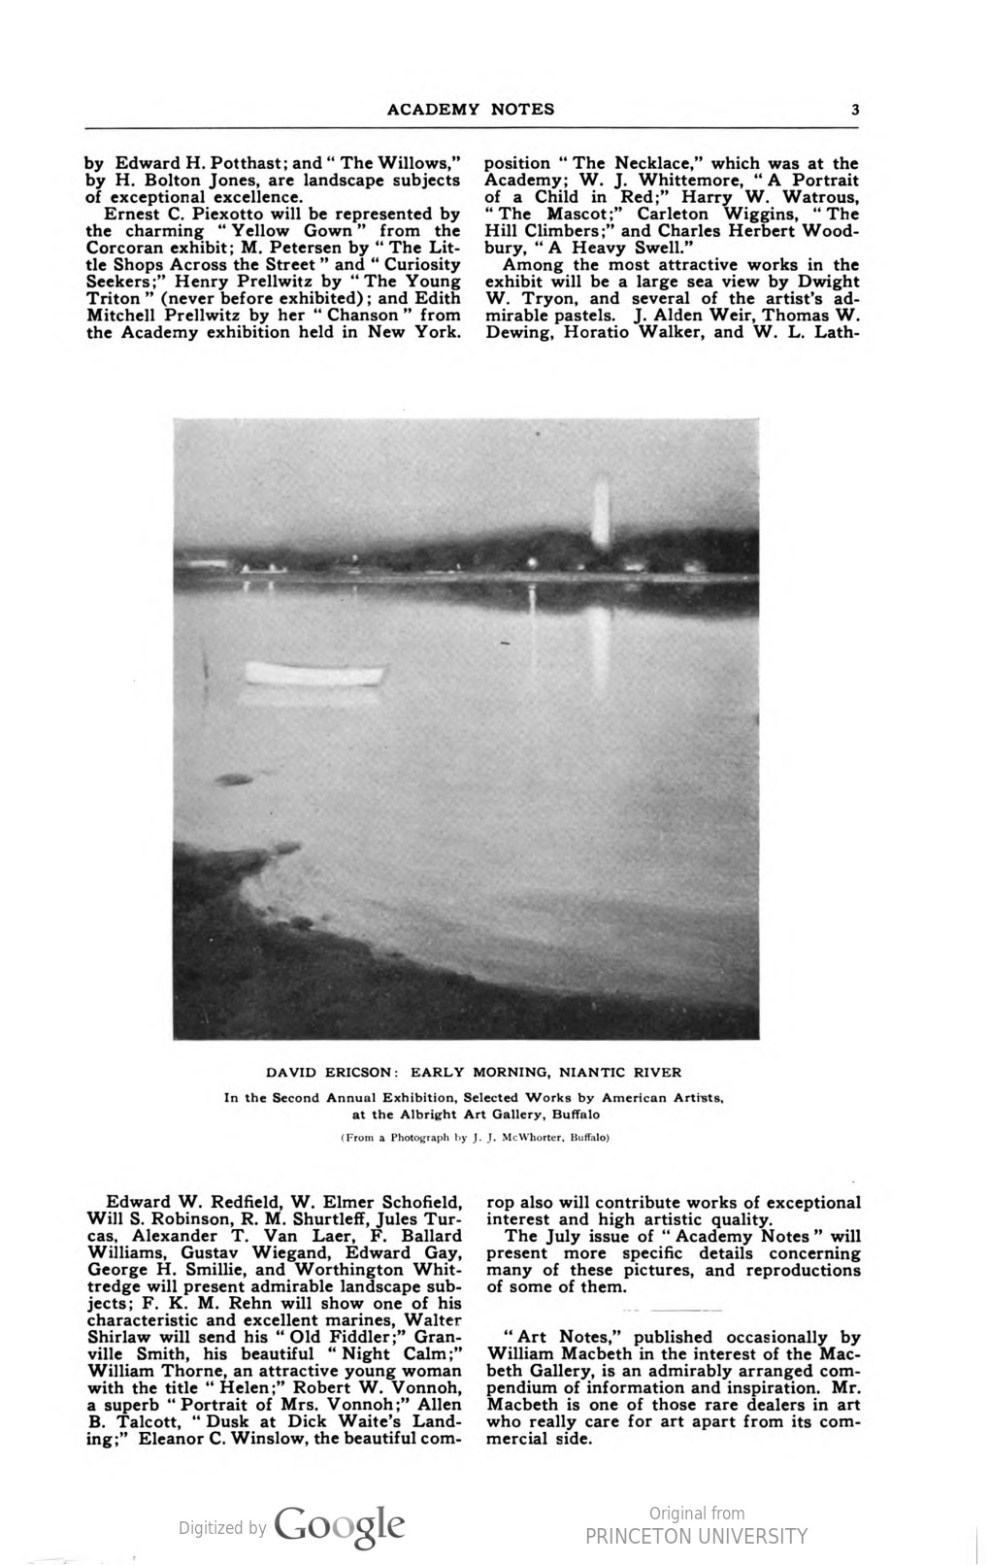 """Academy Notes, Buffalo Fine Arts Academy, Albright Art Gallery, Buffalo, NY, """"Second Annual Exhibition Selected Paintings by American Artists"""", June, 1907, Volume 3, Number 1, page 1-3, not illustrated"""